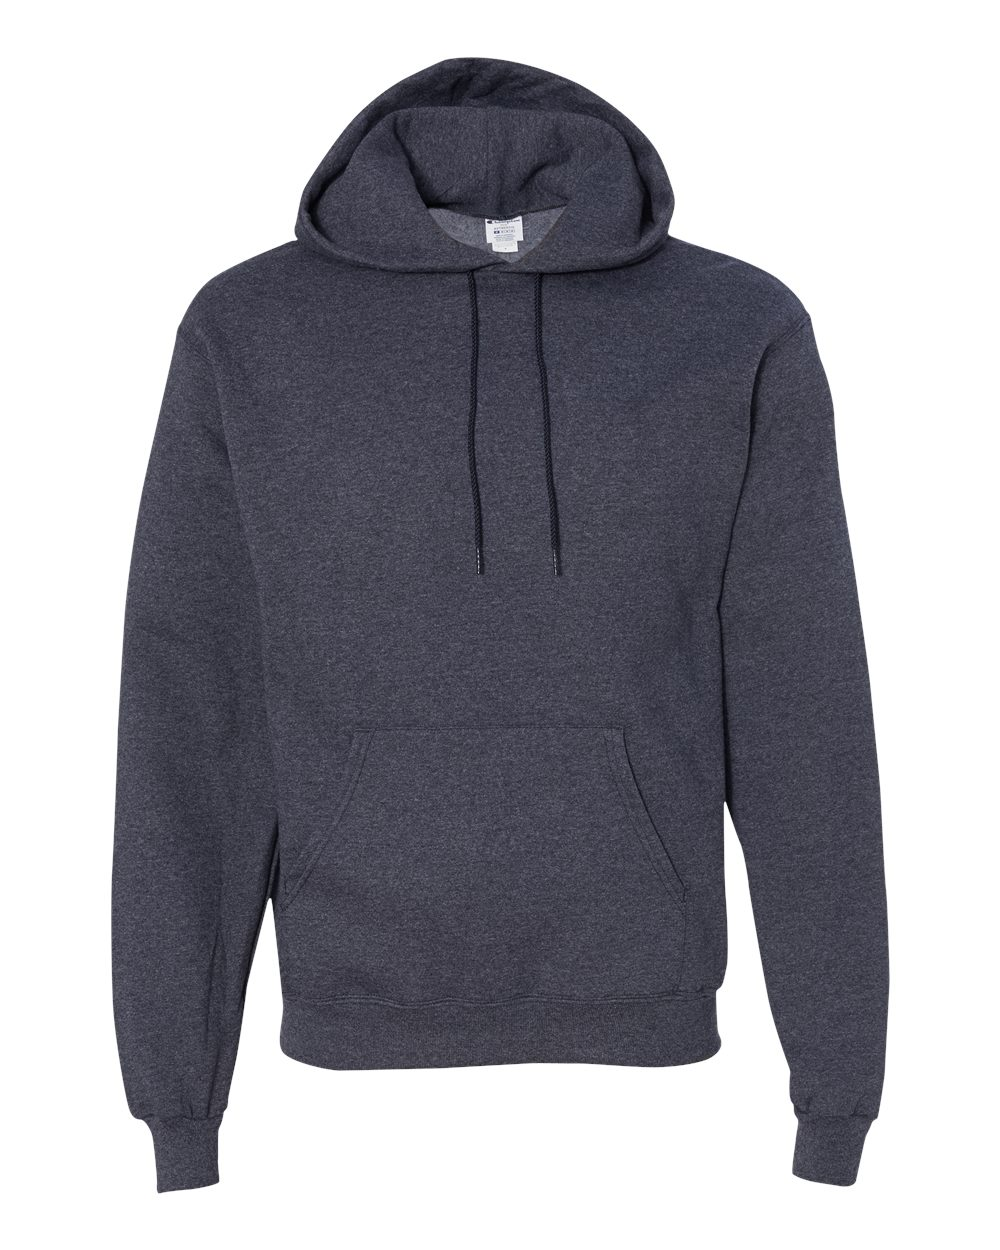 Champion-Mens-Double-Dry-Eco-Hooded-Sweatshirt-Hoodie-Pullover-S700-up-to-3XL miniature 30